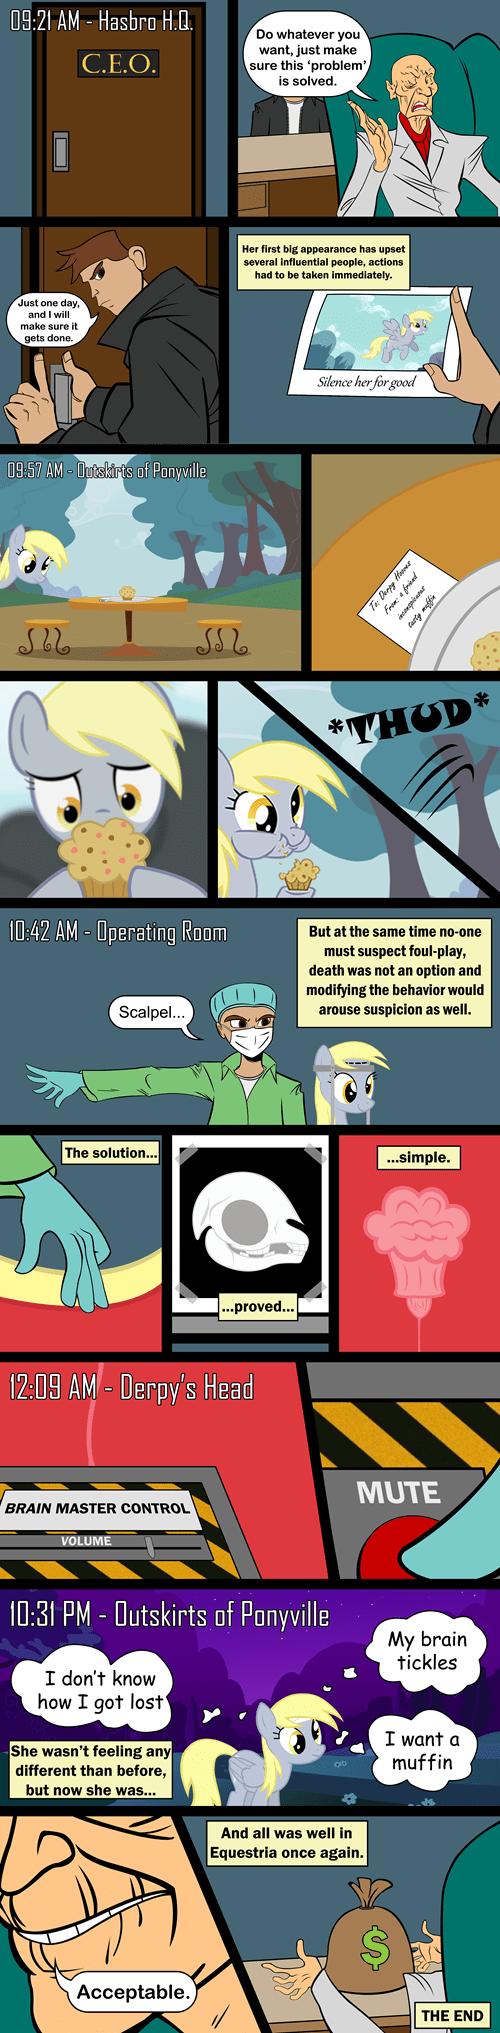 comic derpy hooves headcanon voice acting - 8096367360